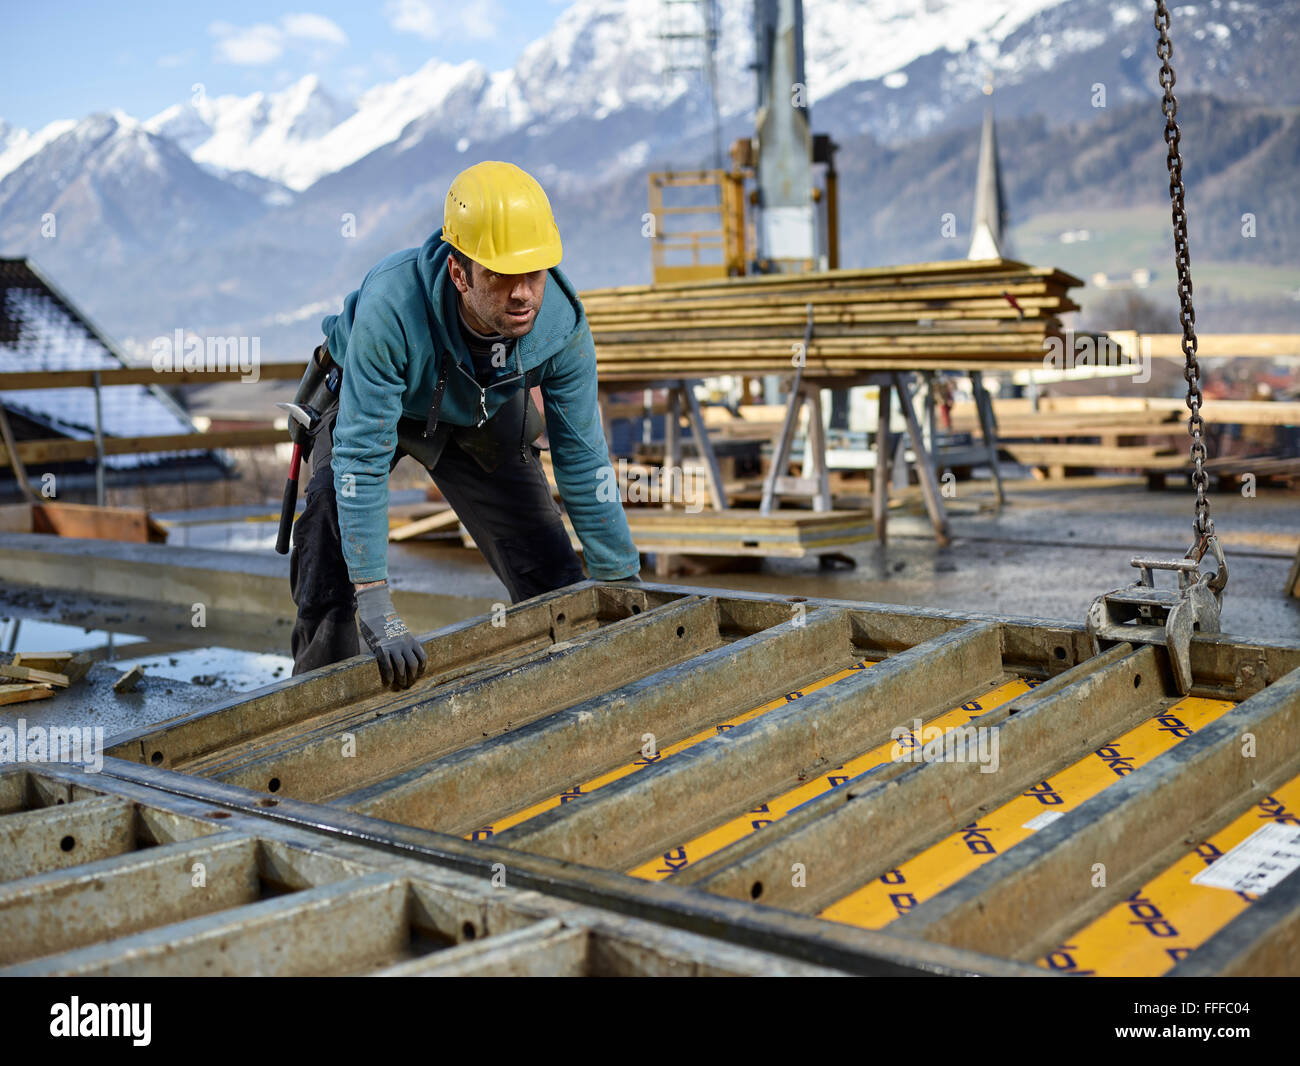 Construction worker lifting shuttering wall with crane, preparing framed formwork, Innsbruck Land, Tyrol, Austria Stock Photo